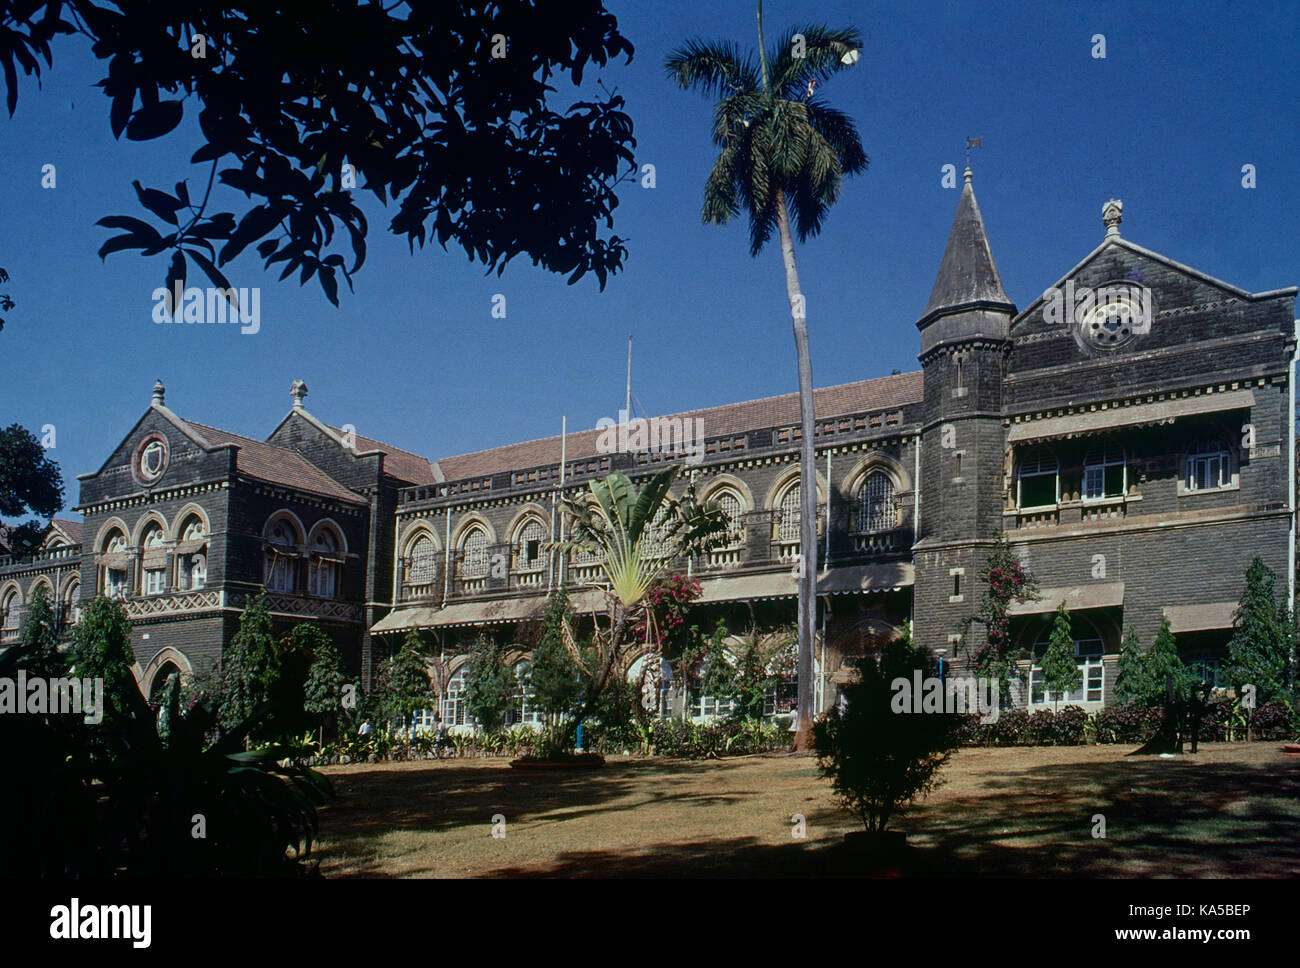 School Compound India High Resolution Stock Photography And Images Alamy